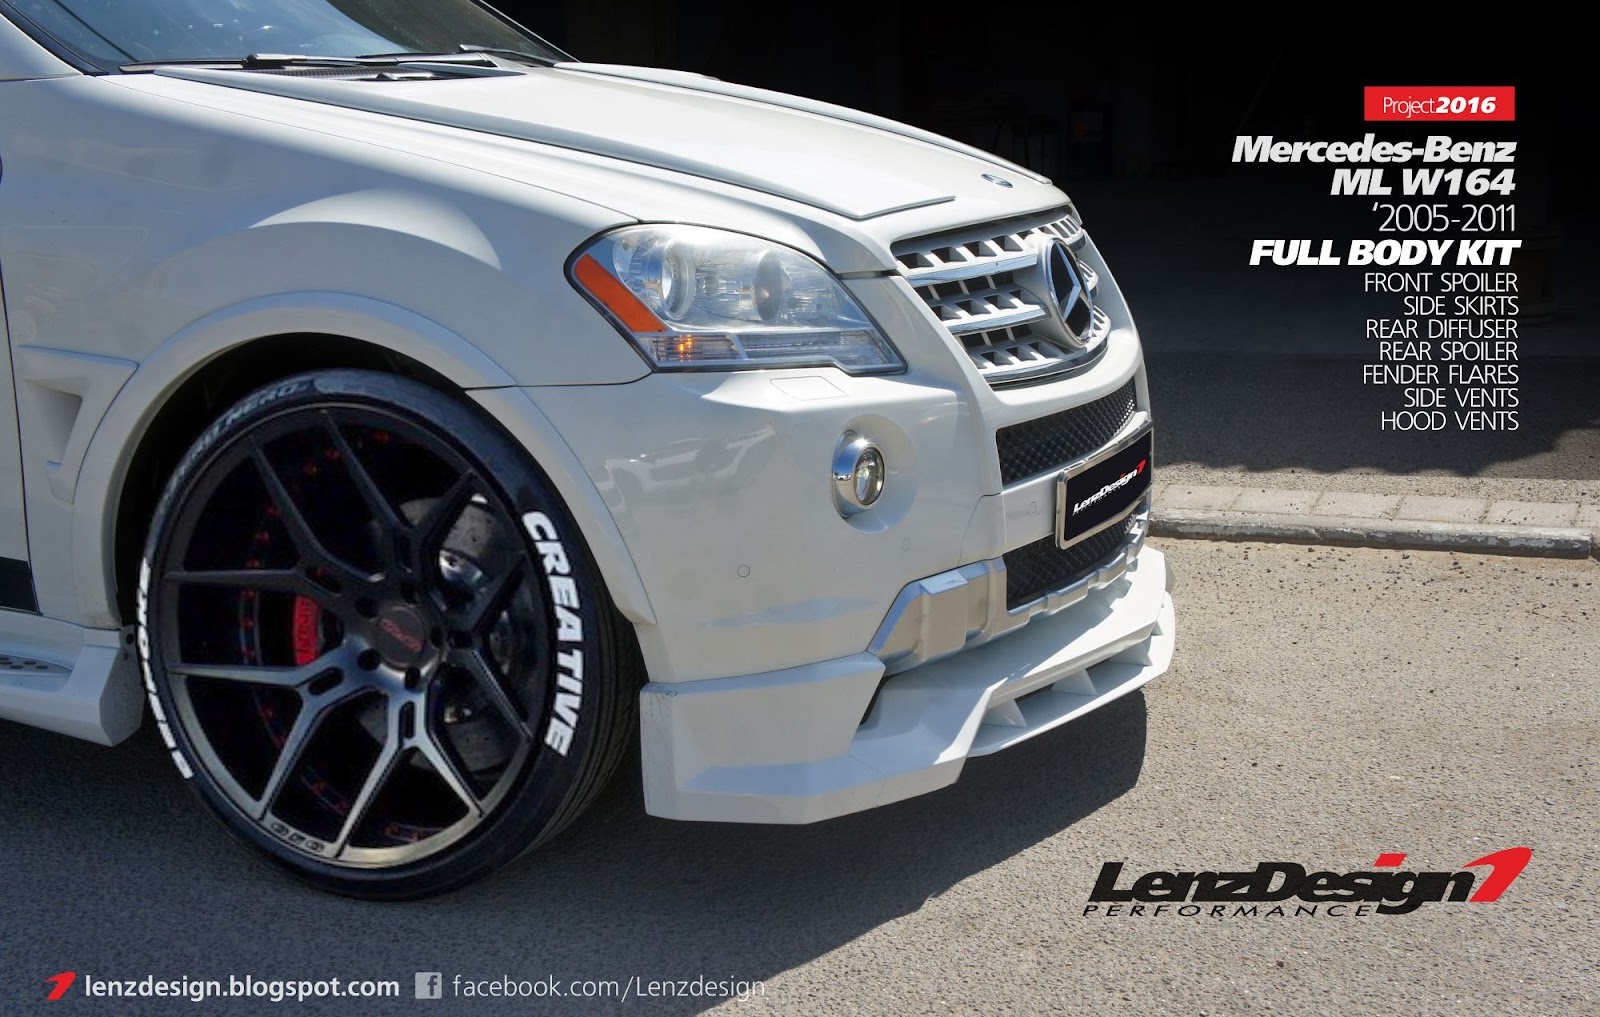 Mercedes benz ml w164 tuning wide body kit lenzdesign for Performance mercedes benz